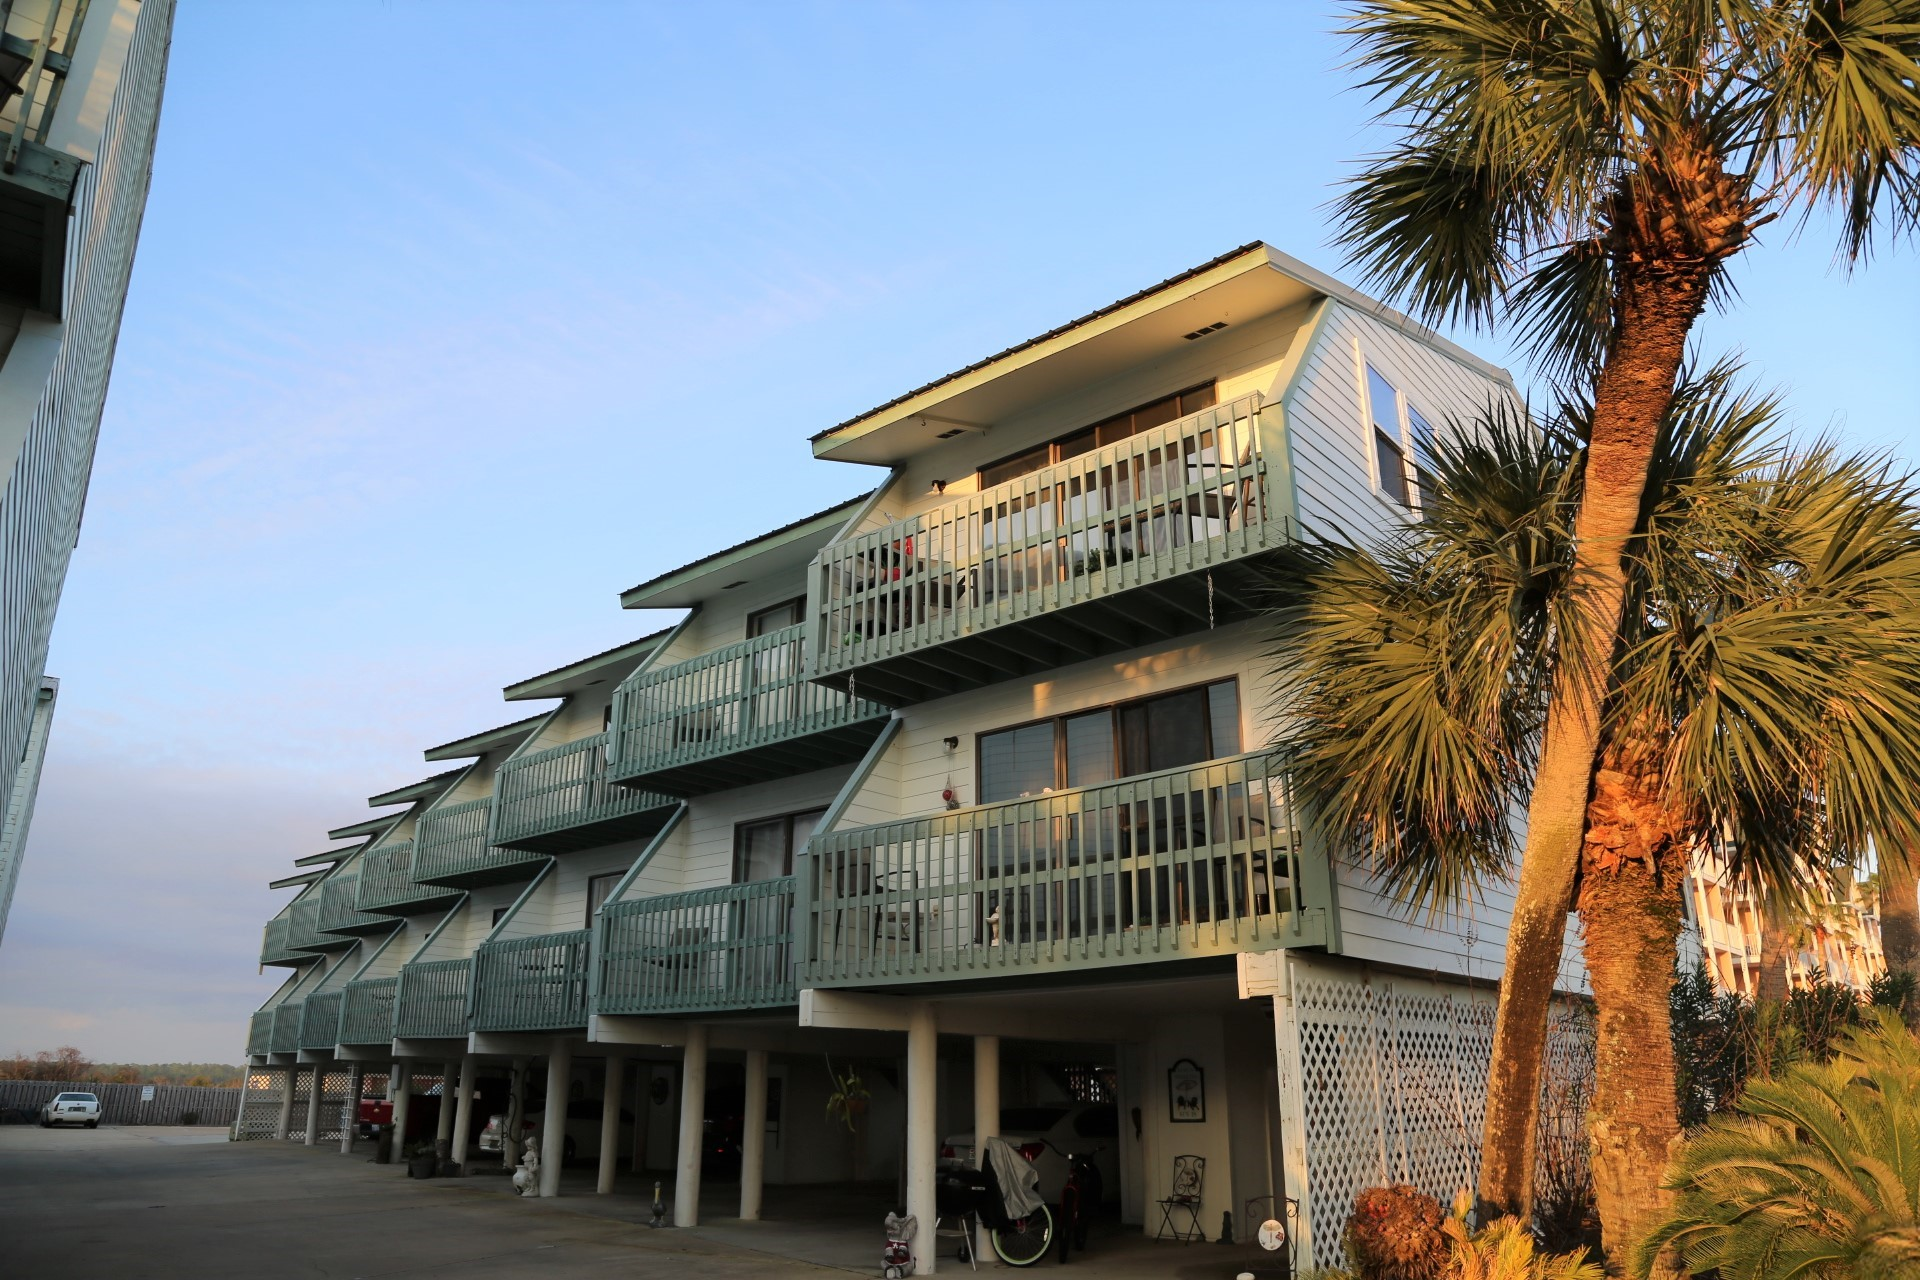 Beachwalk units are low density, two-story townhomes